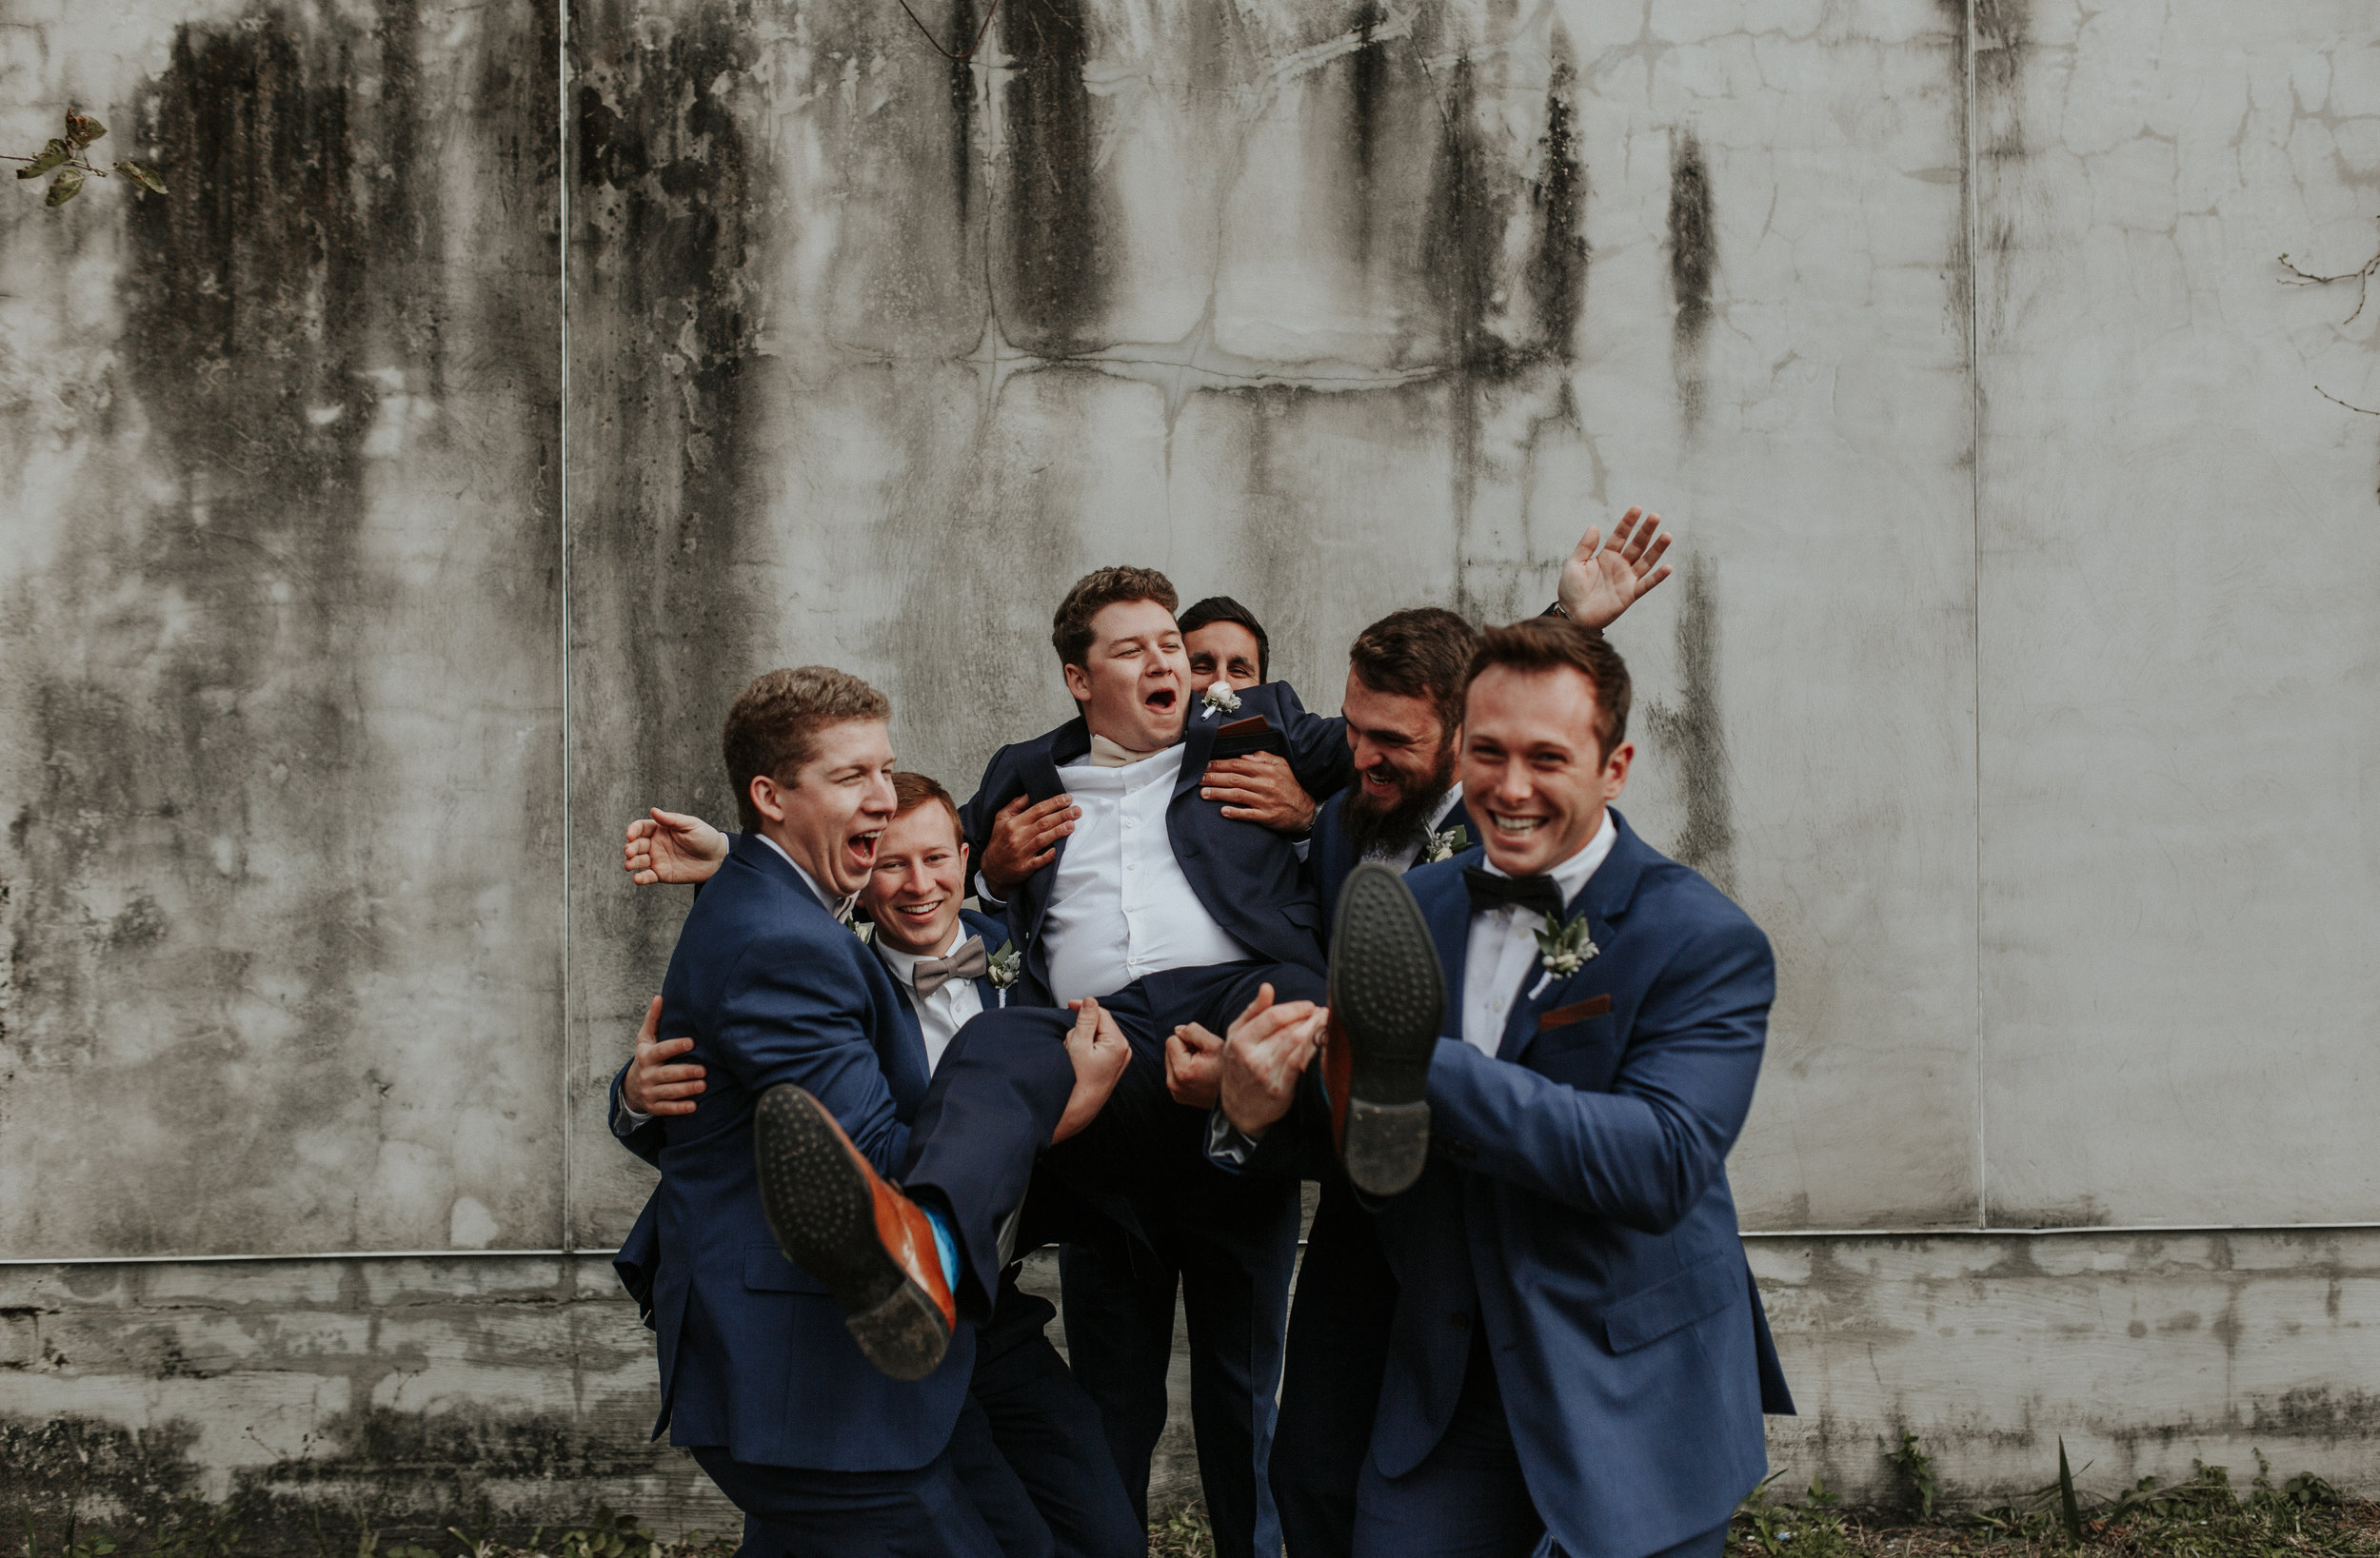 travisandsavannahweddingpreview20.jpg